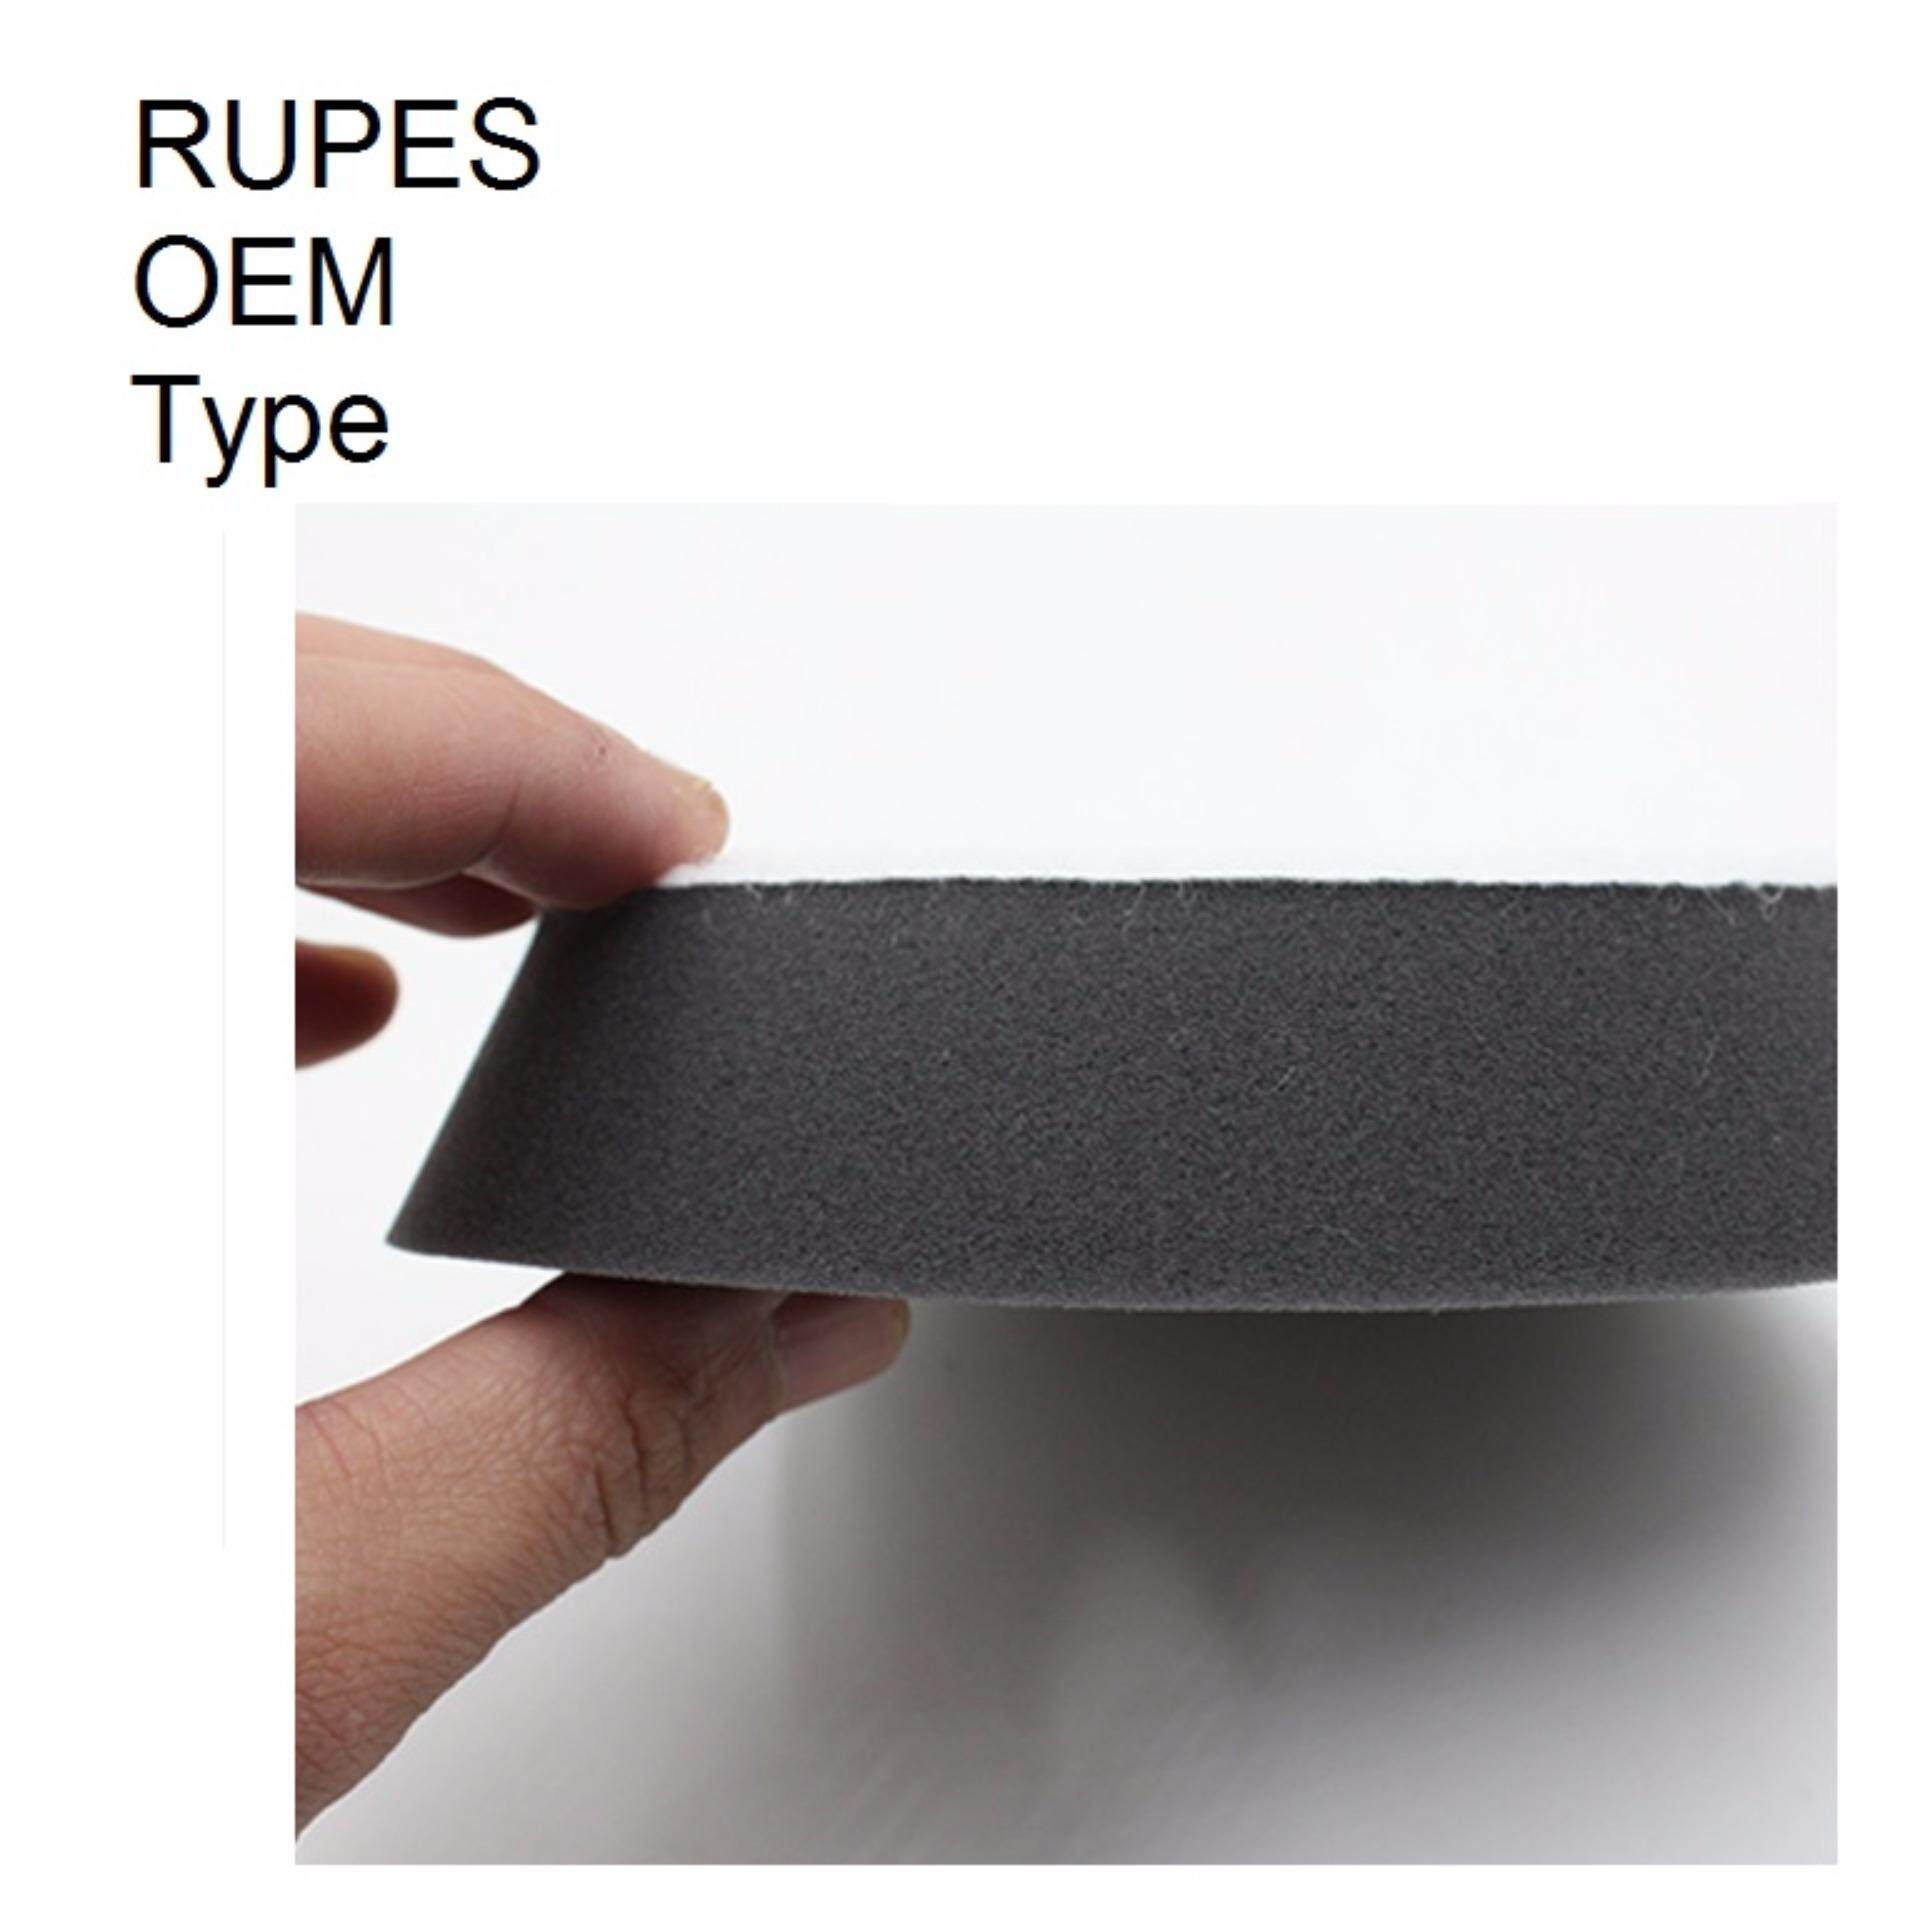 Direct OEM Rupes type from factory 6 inch Foam Finishing DA sponge pad for 5 inch disc